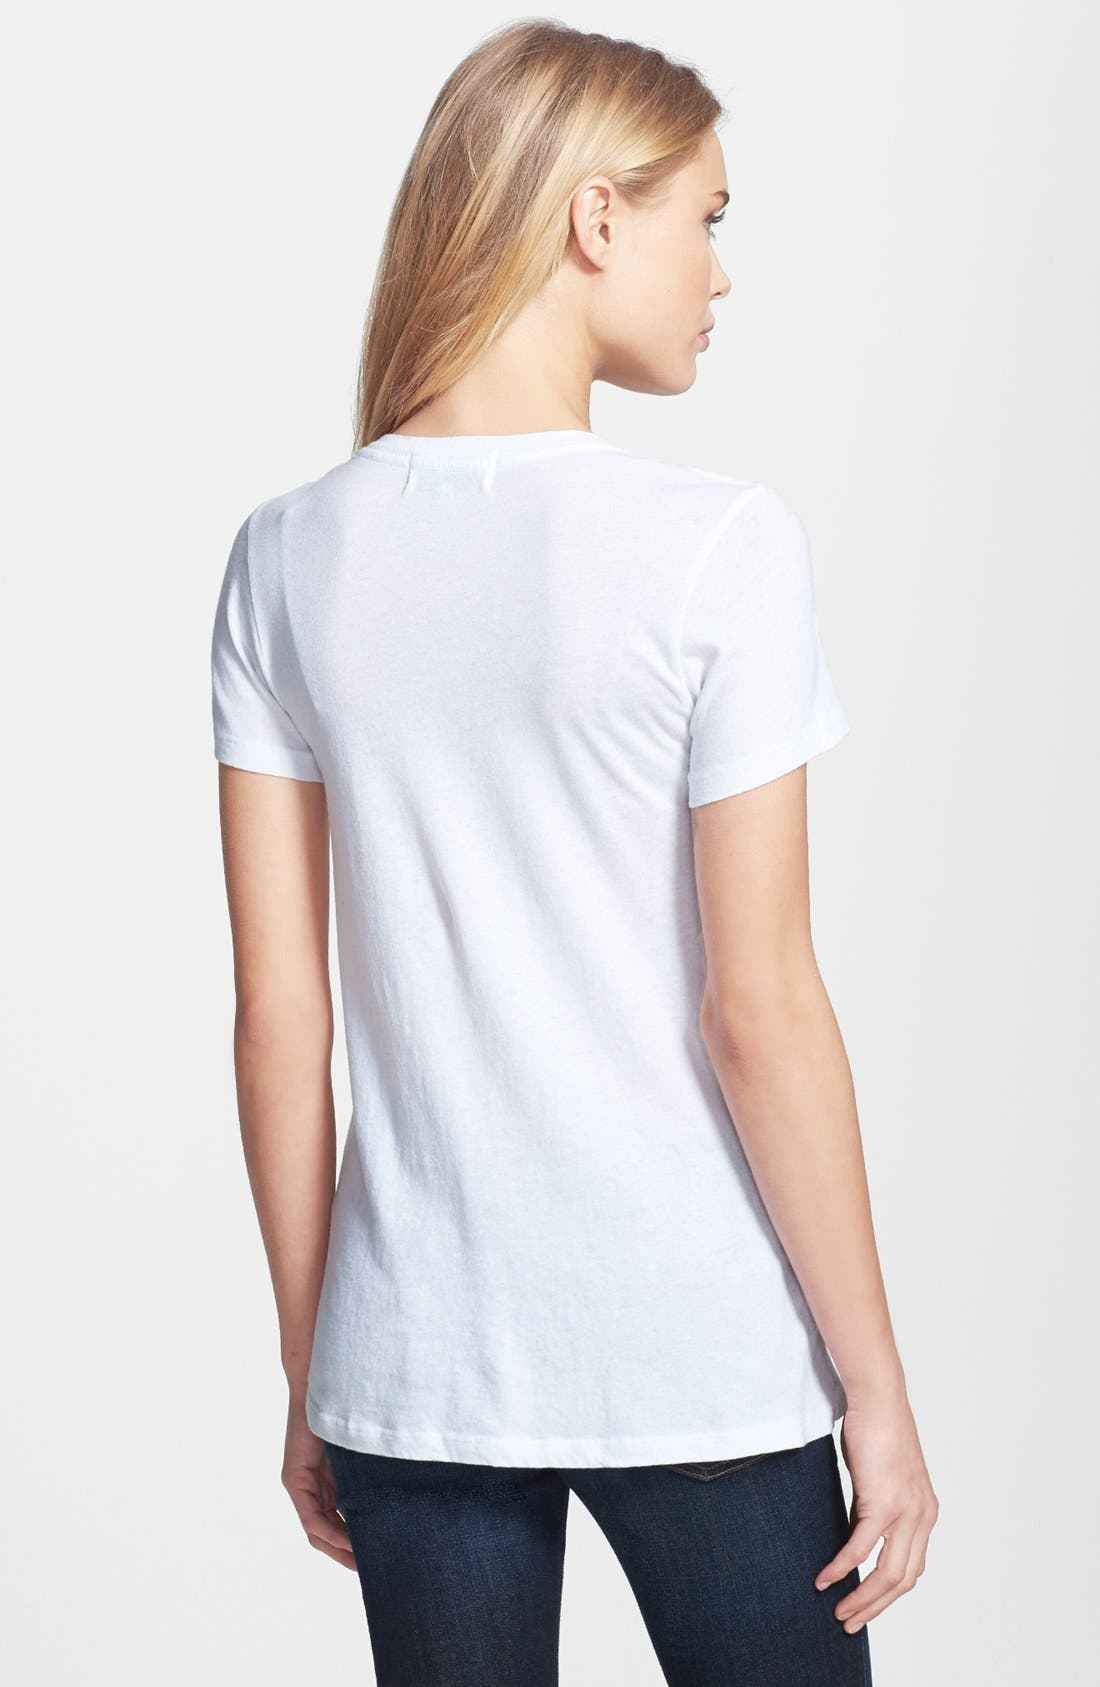 Alternate Image 2  - Wildfox 'Sparkle Heart' Crewneck Cotton Tee (Special Purchase)